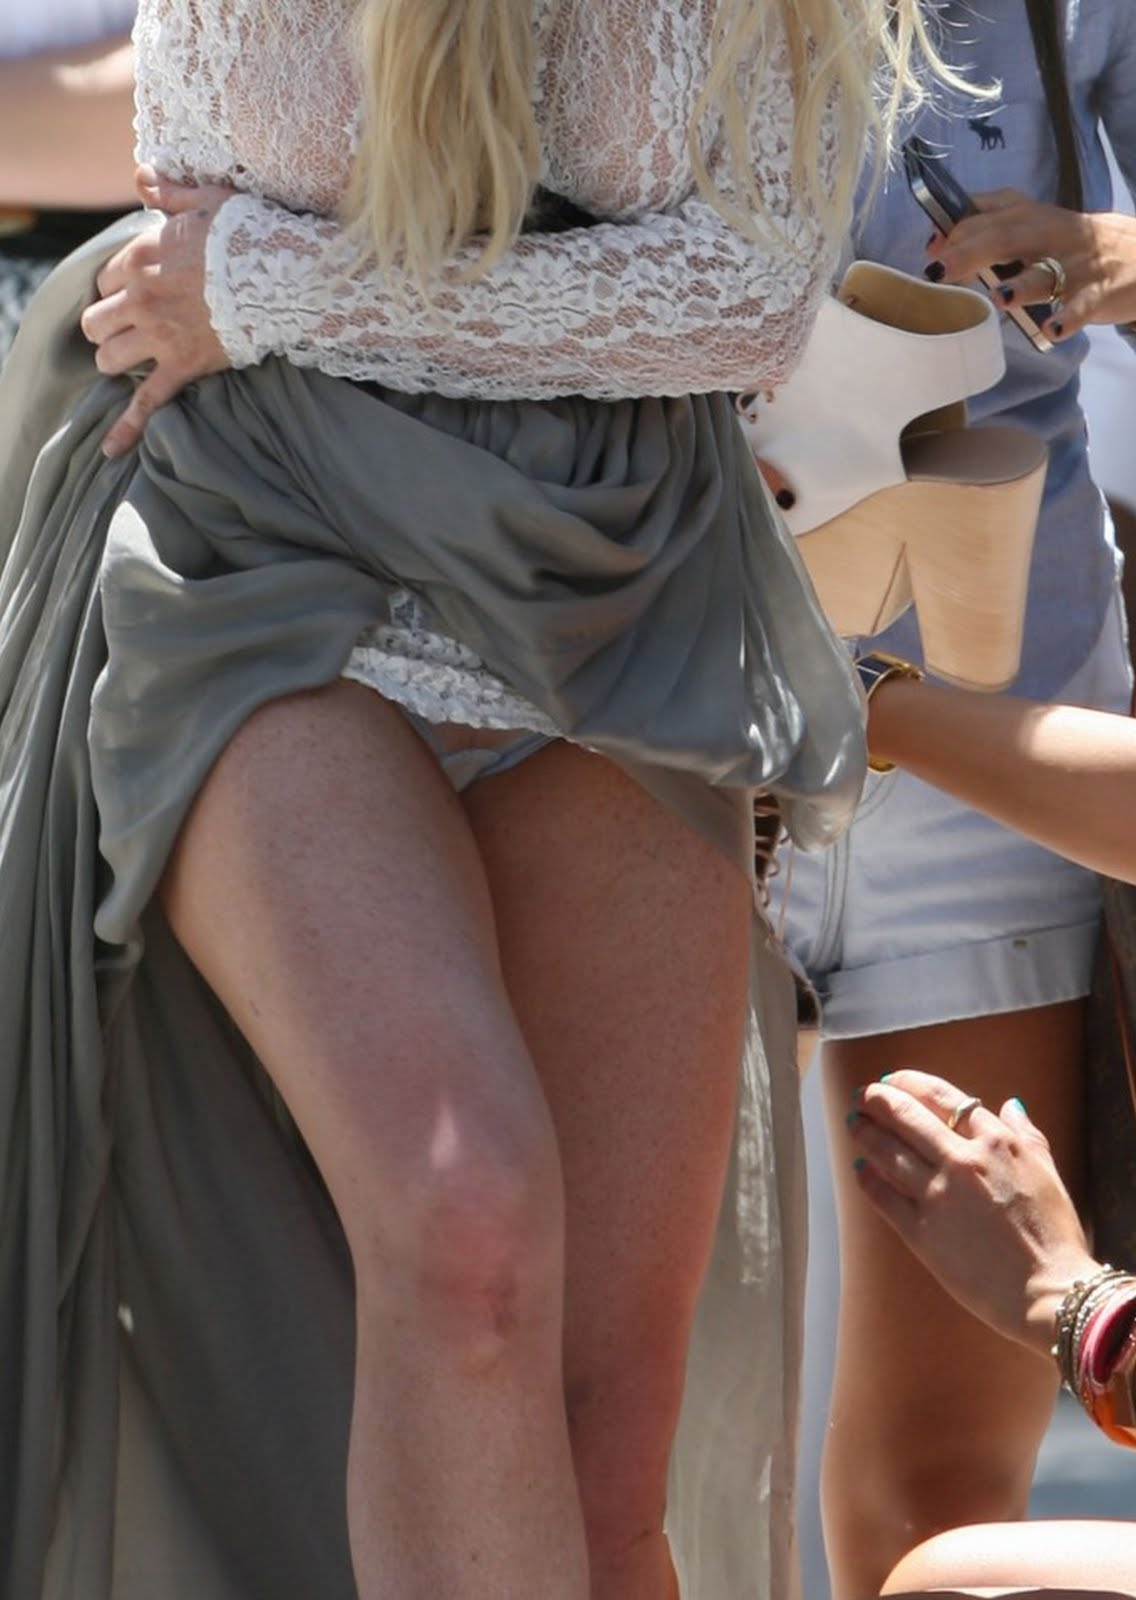 Upskirt on lohan nick lindsay